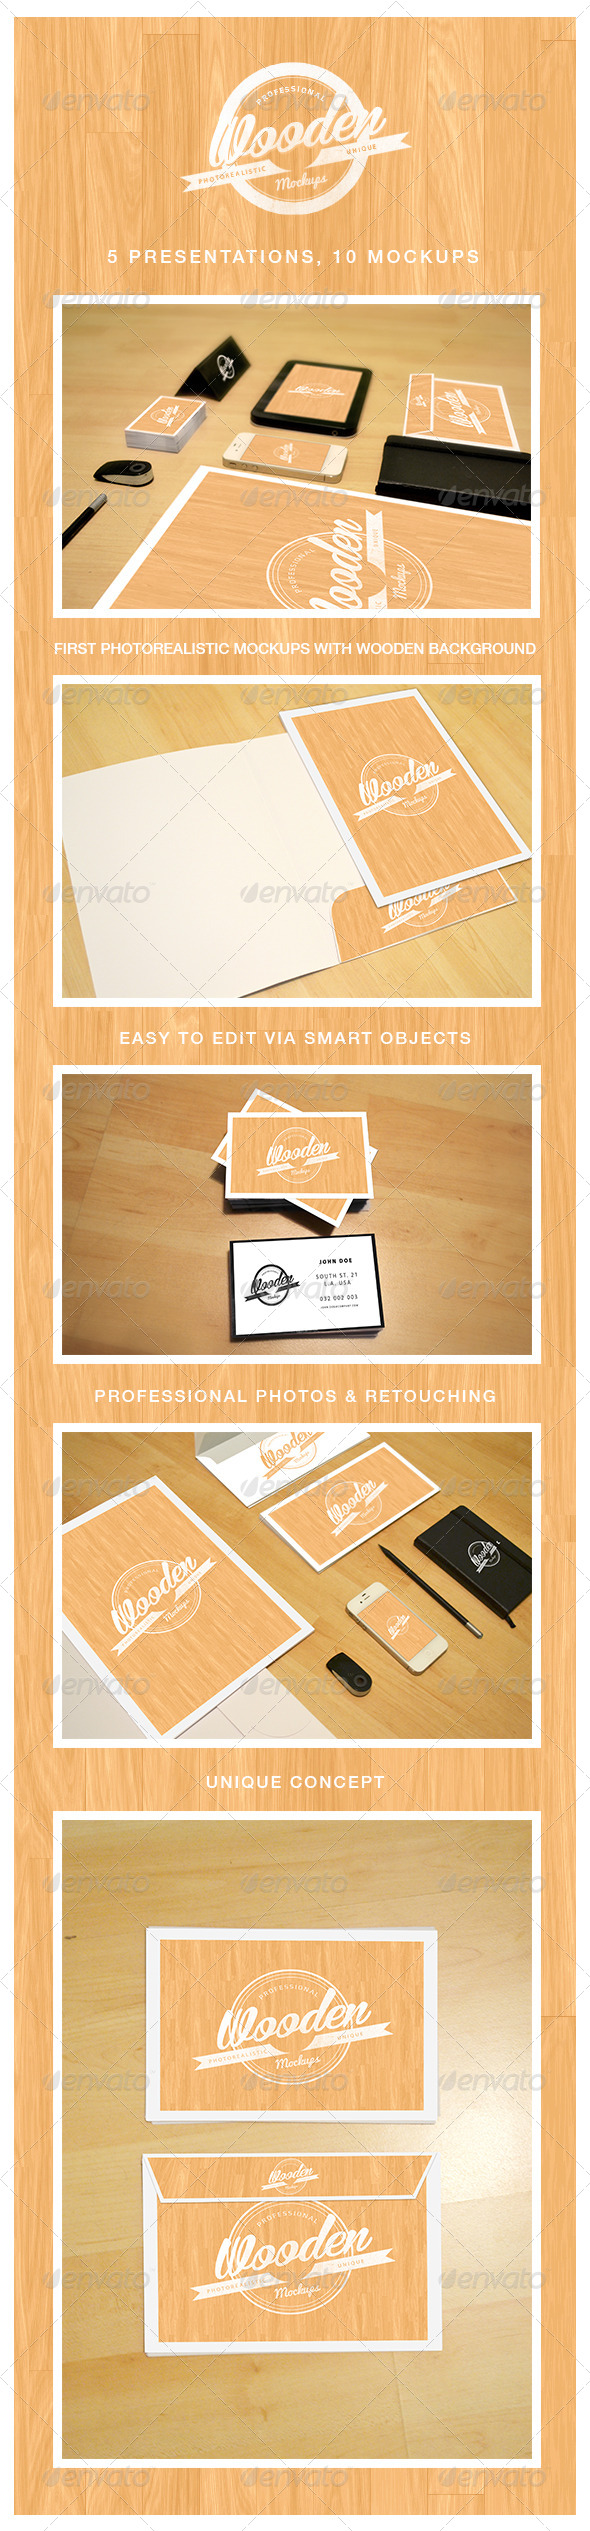 GraphicRiver Photorealistic Wooden Mockups Vol 1 5134882